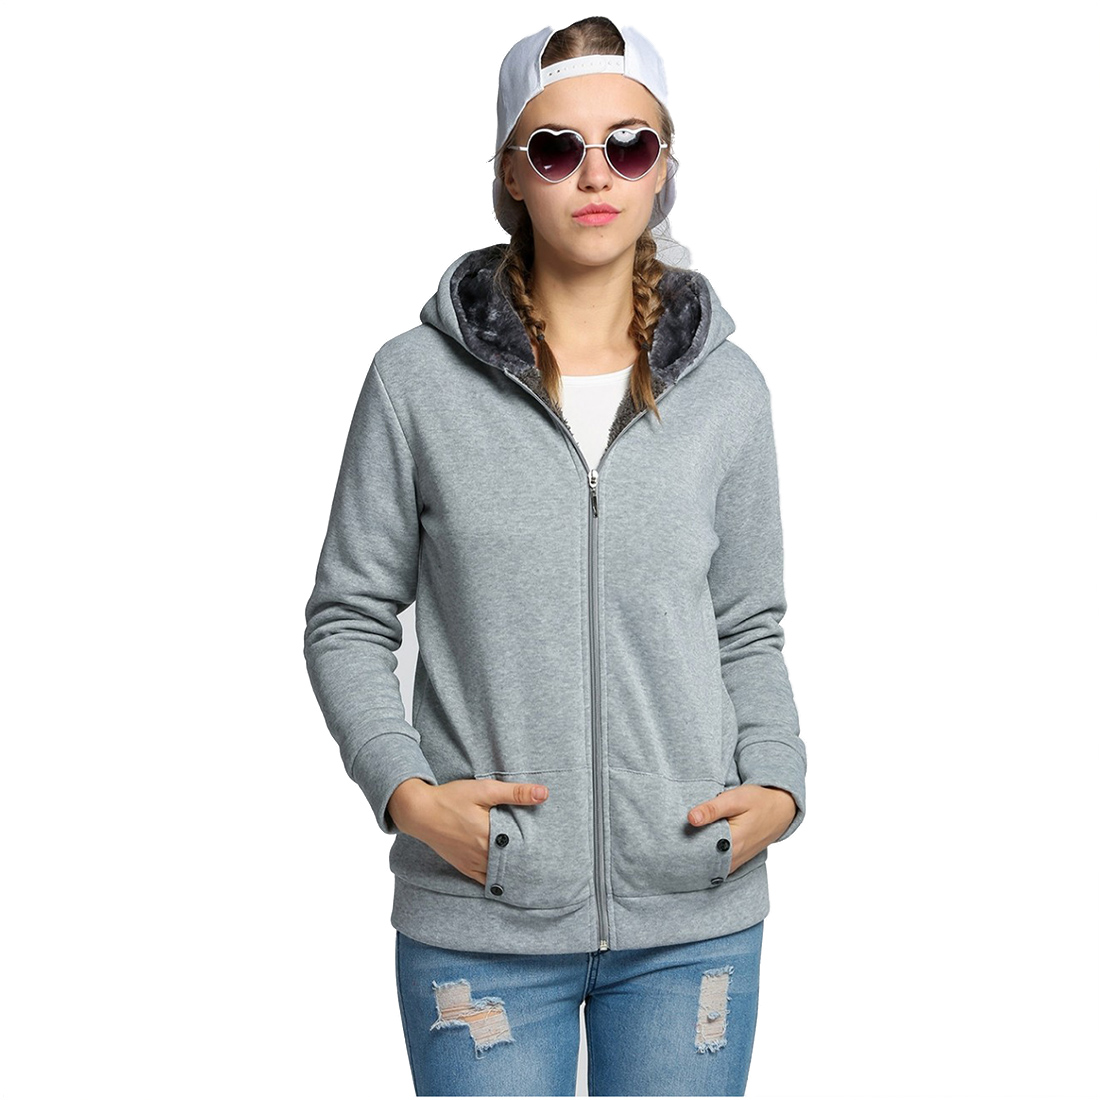 TKOH Womens Hoodies Warm Fleece Cotton Coat Zipper Outerwear Sweatshirts